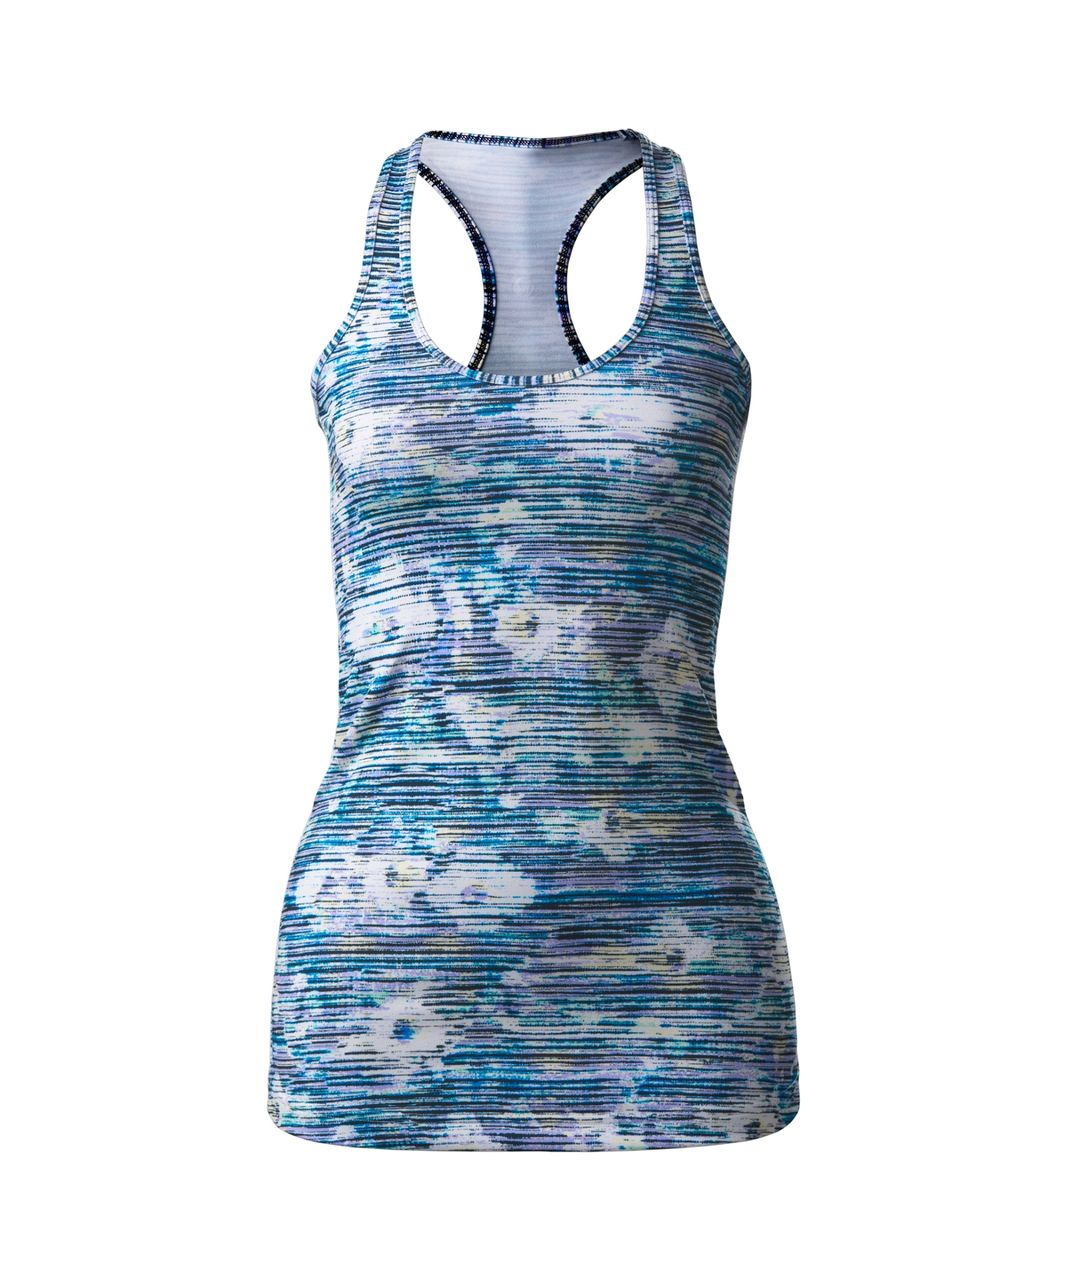 Lululemon Cool Racerback - Blurry Belle Multi